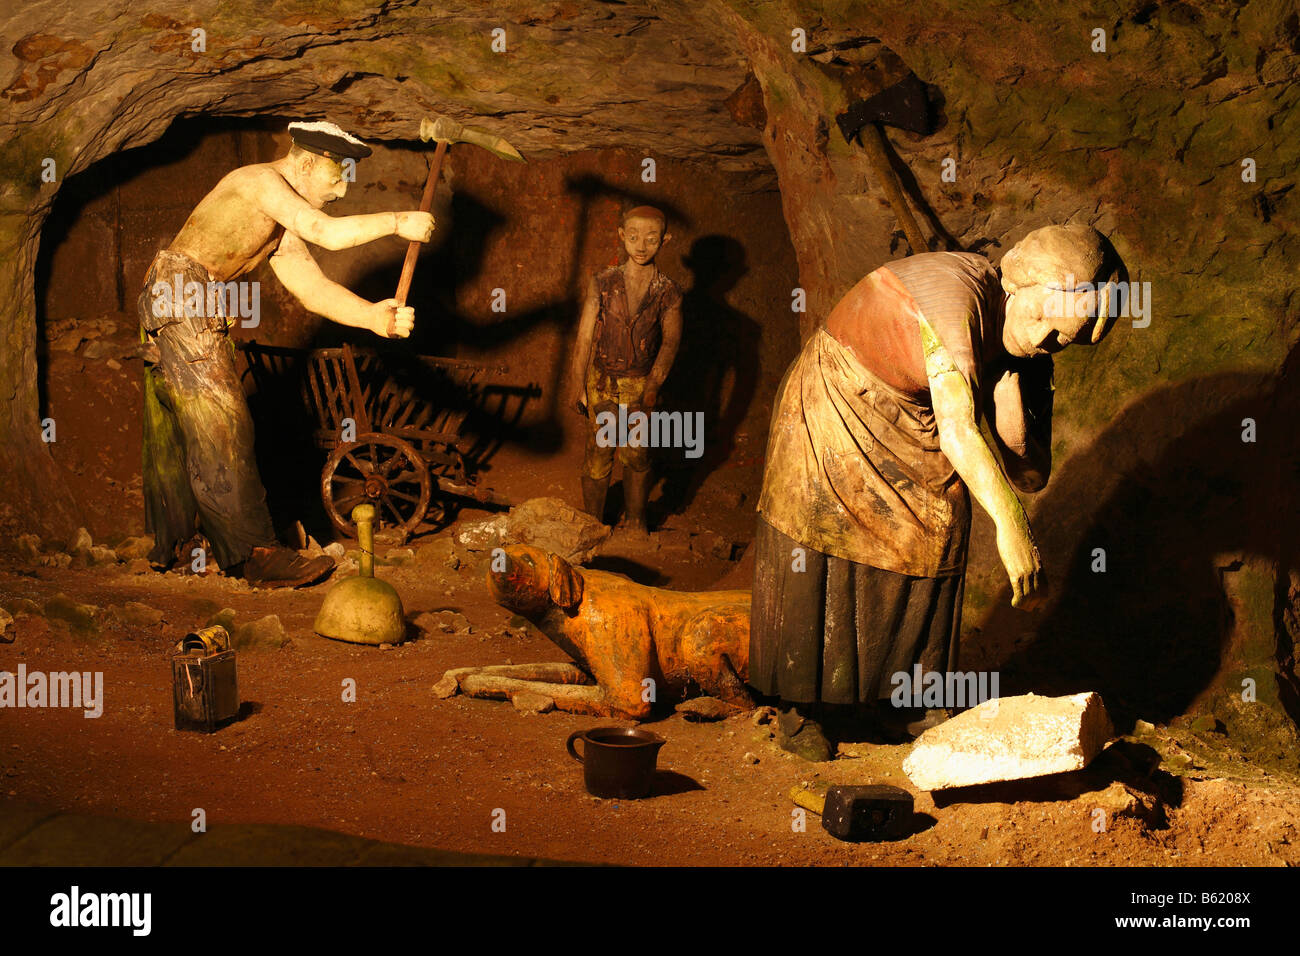 Figures in Walldorf sandstone and fairytale cave, Rhoen, Thuringia, Gerrmany, Europe - Stock Image